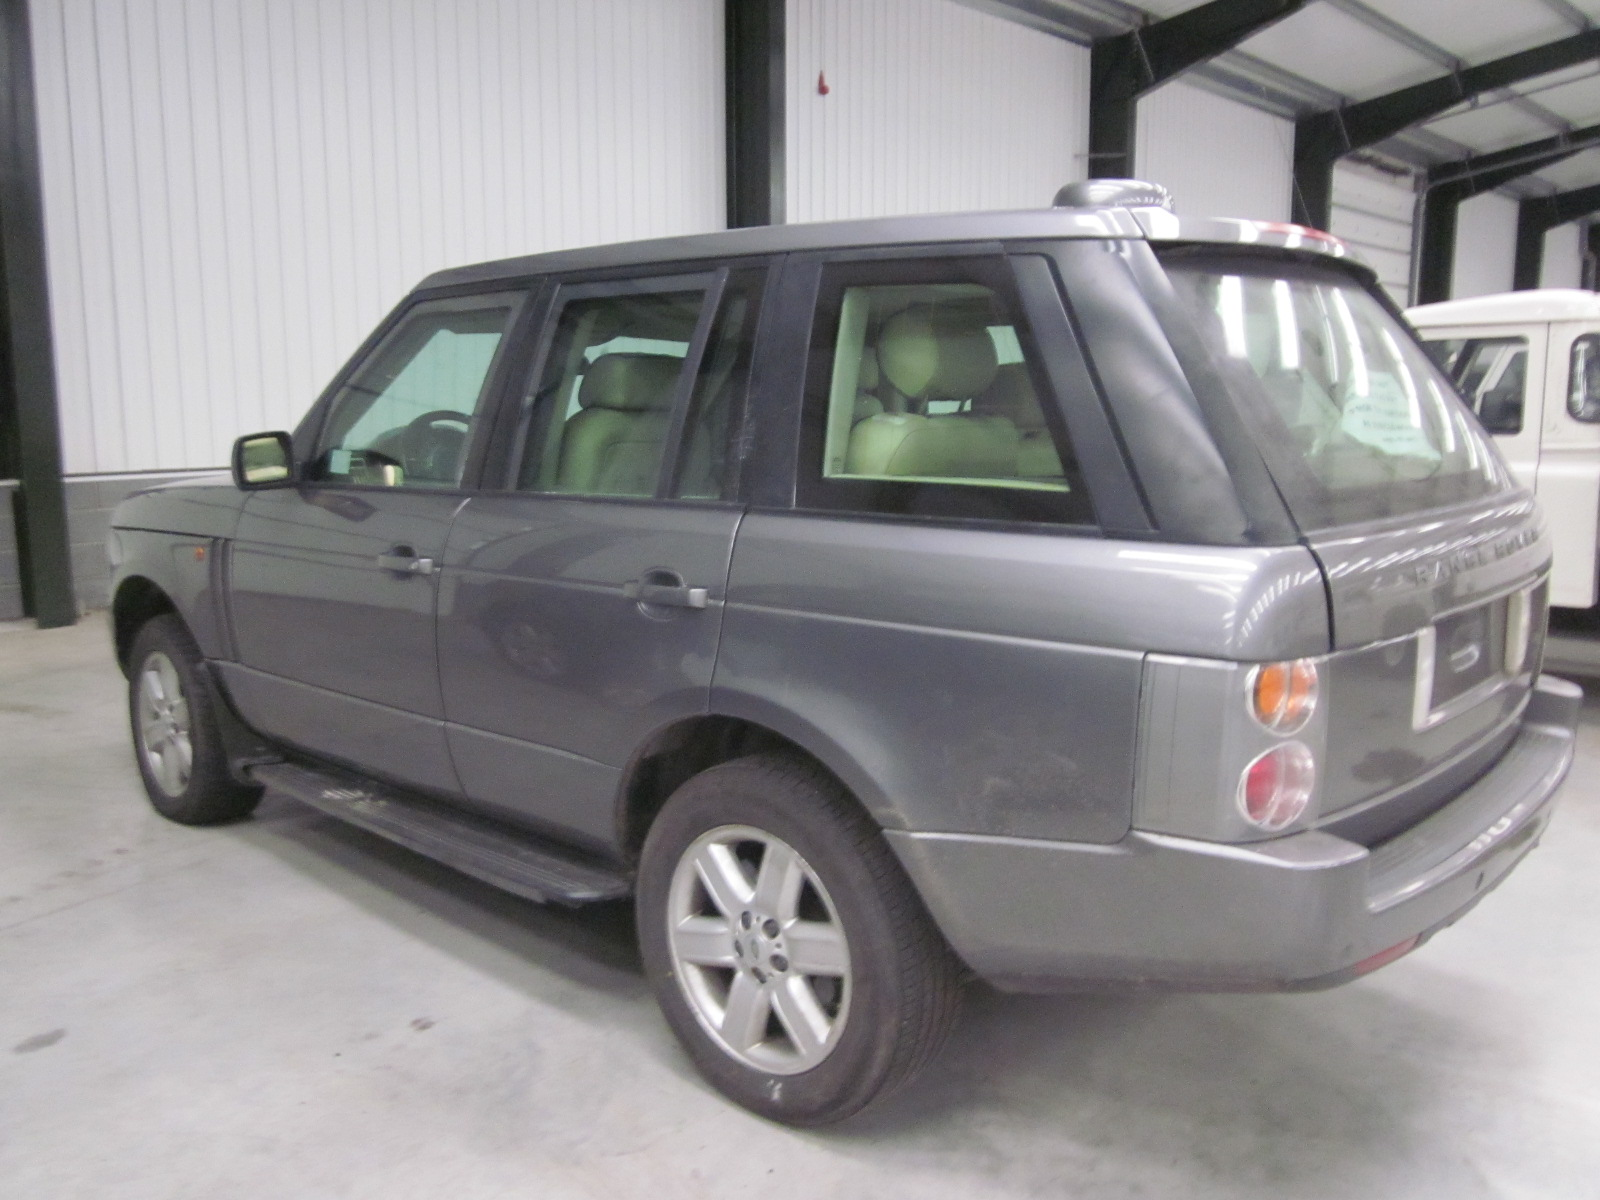 Armoured Range Rover vogue LHD V8 metallic grey for sale